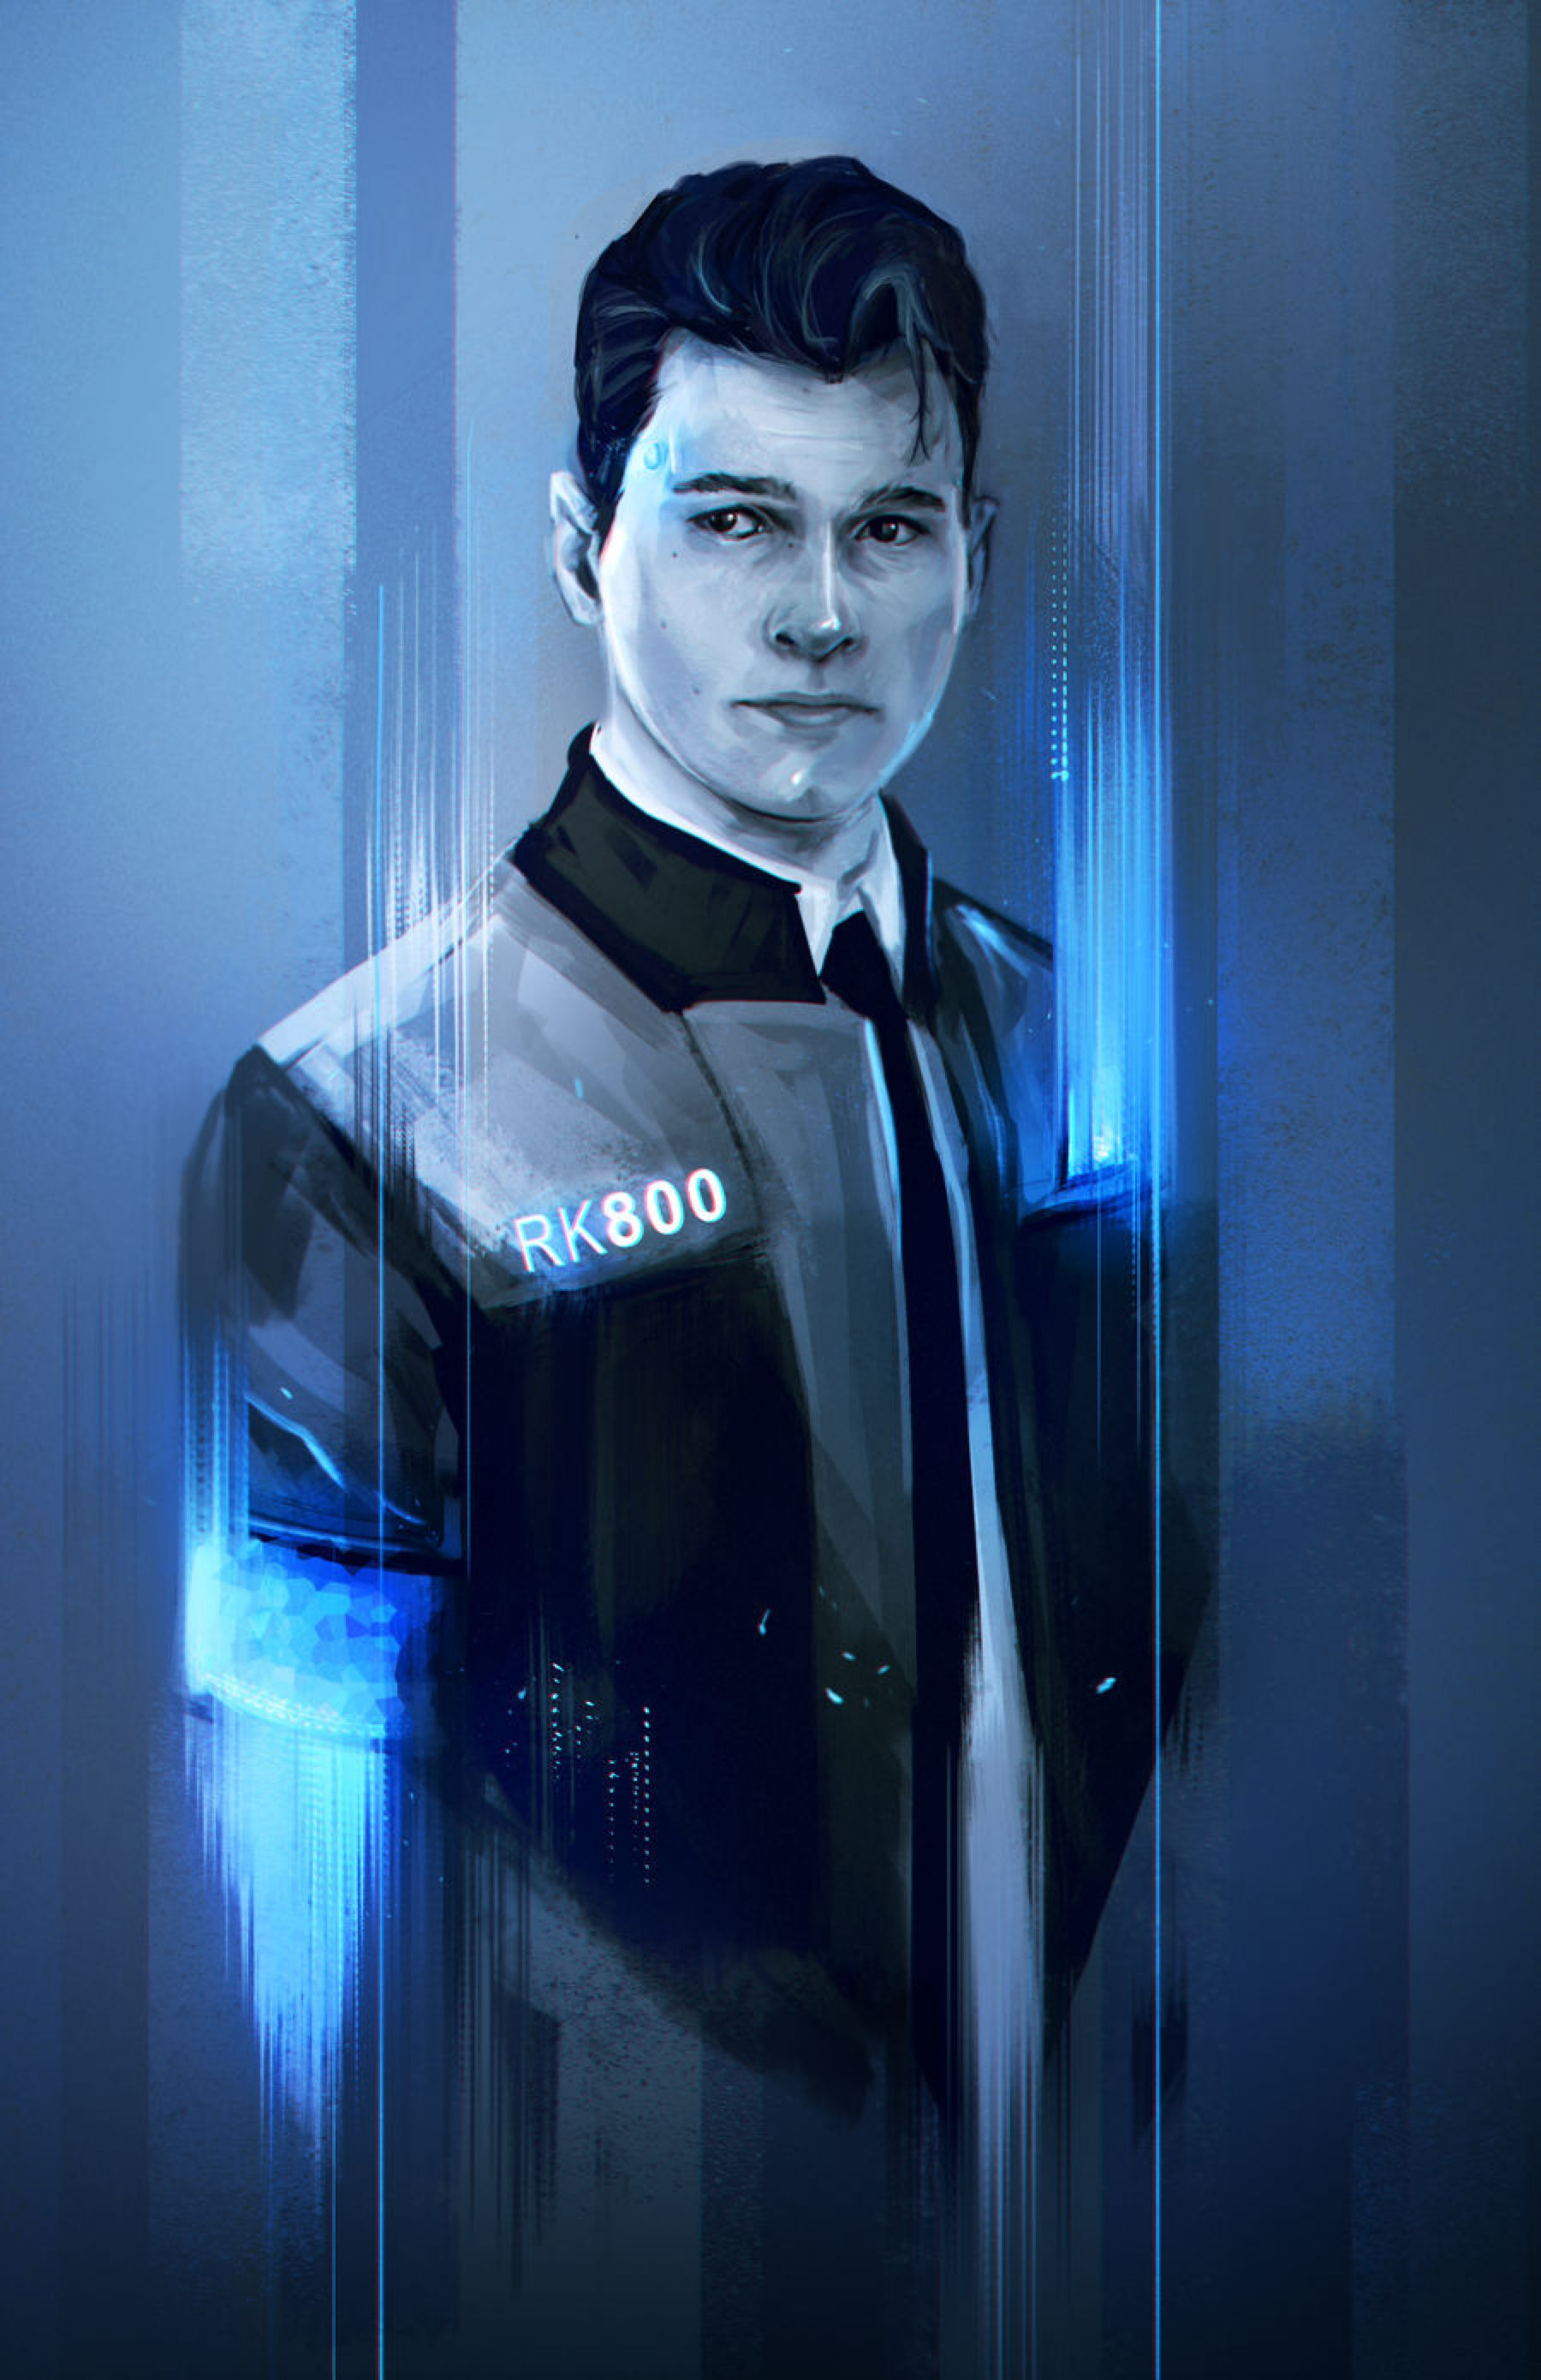 Connor Detroit Become Human By Whereisnovember On Deviantart